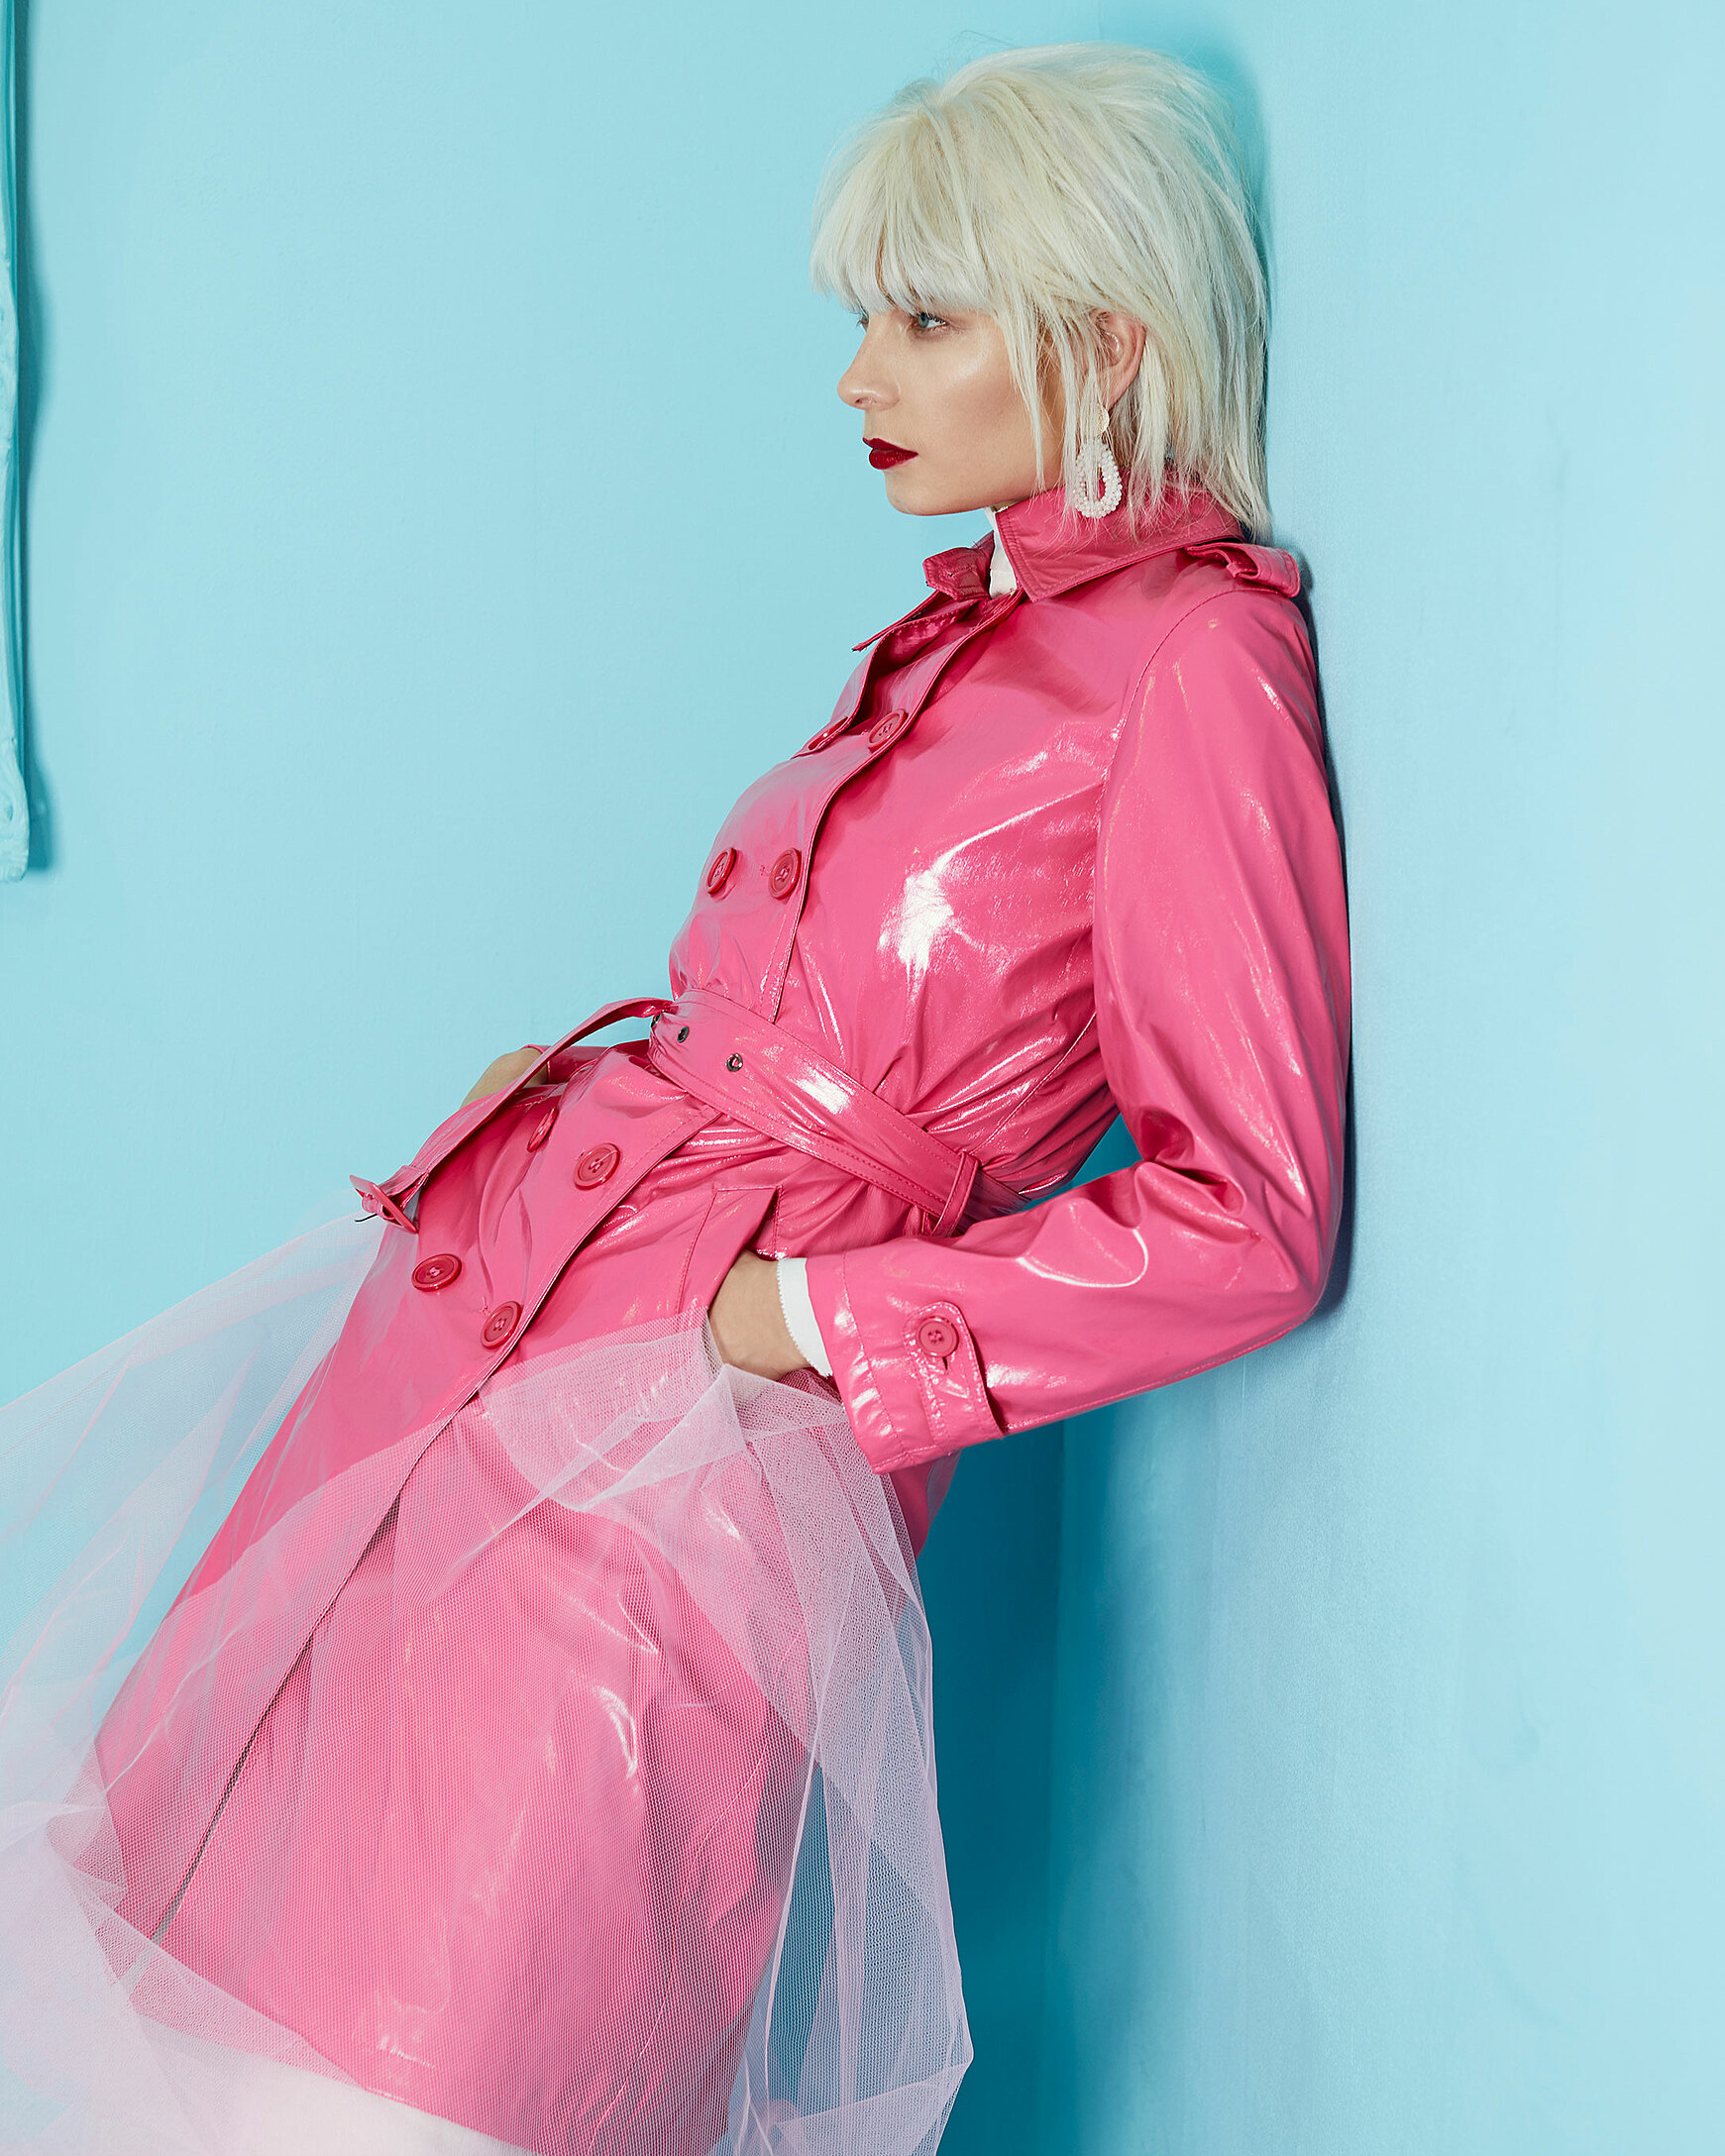 A female model with a blonde wig stands cool on the wall with a pink trench coat and rosy tulle. She wears white earrings and dark red lips